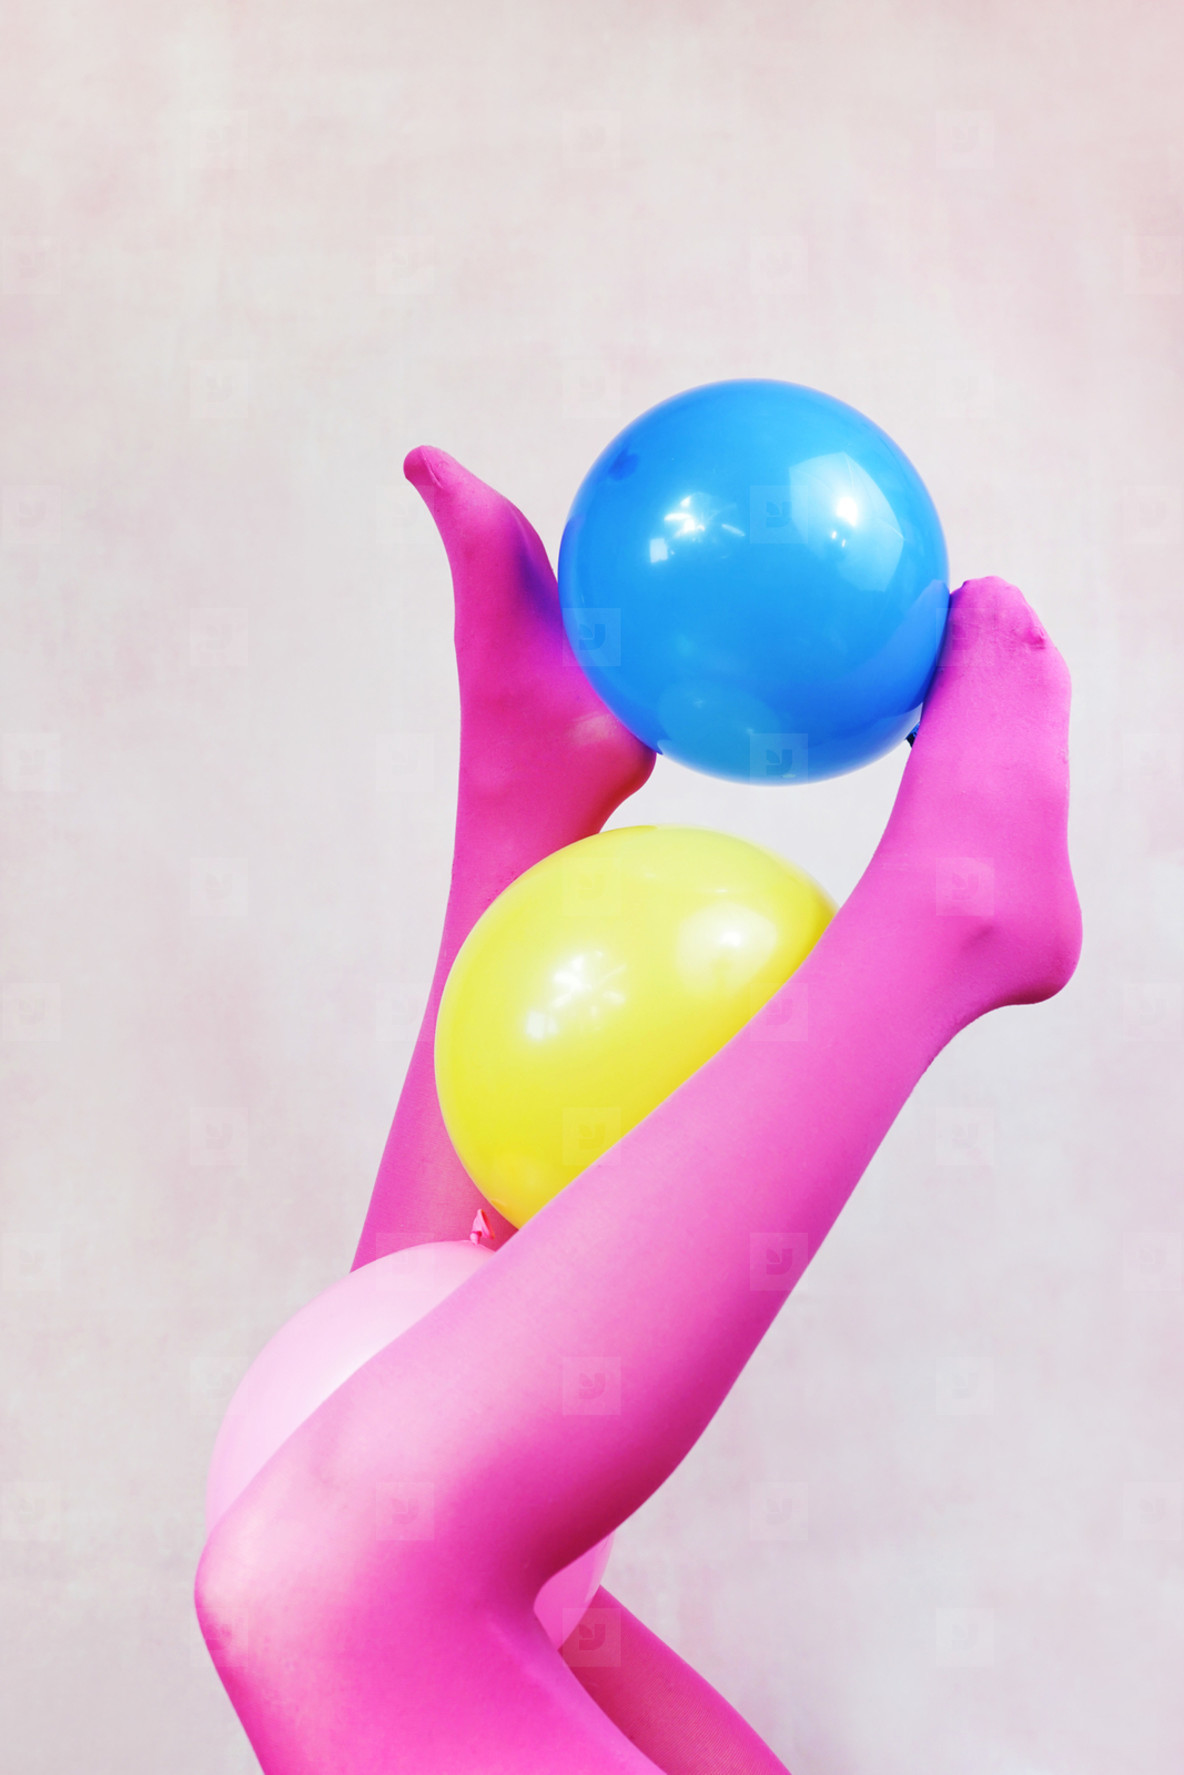 Pop art about legs wearing pink tights and holding balloons